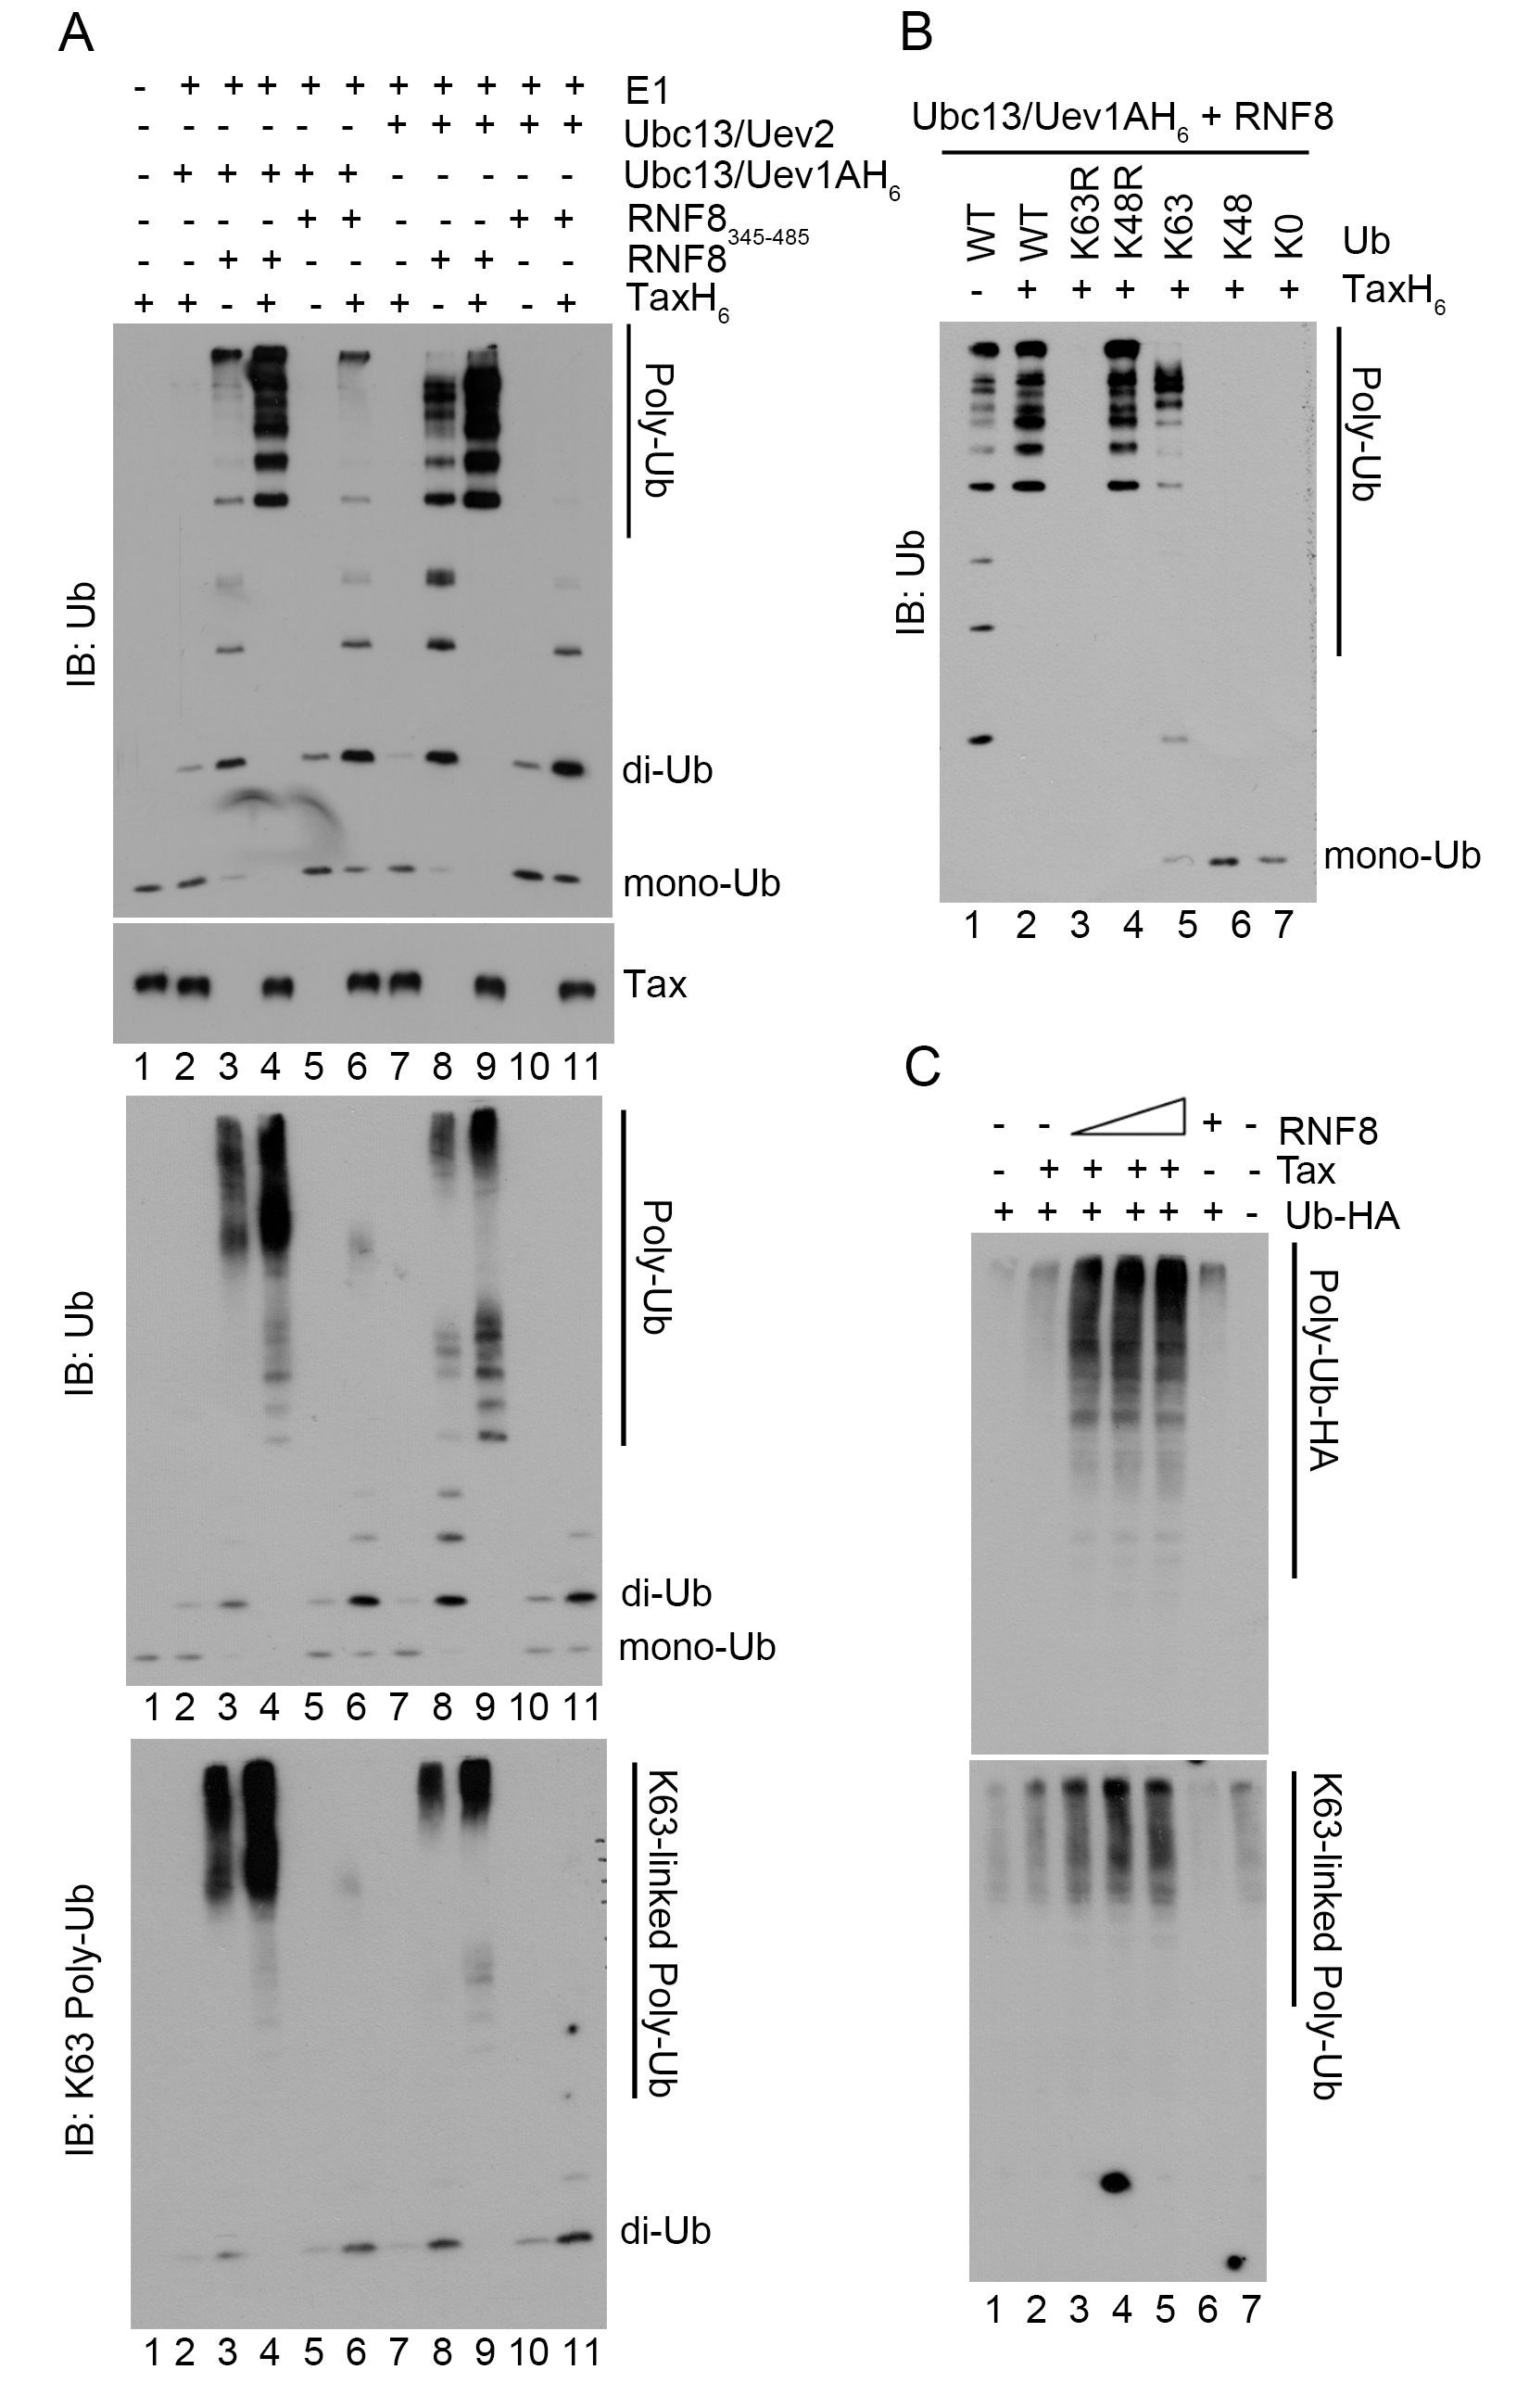 Tax stimulates RNF8 and Ubc13:Uev1A/2 to assemble long K63-pUb.